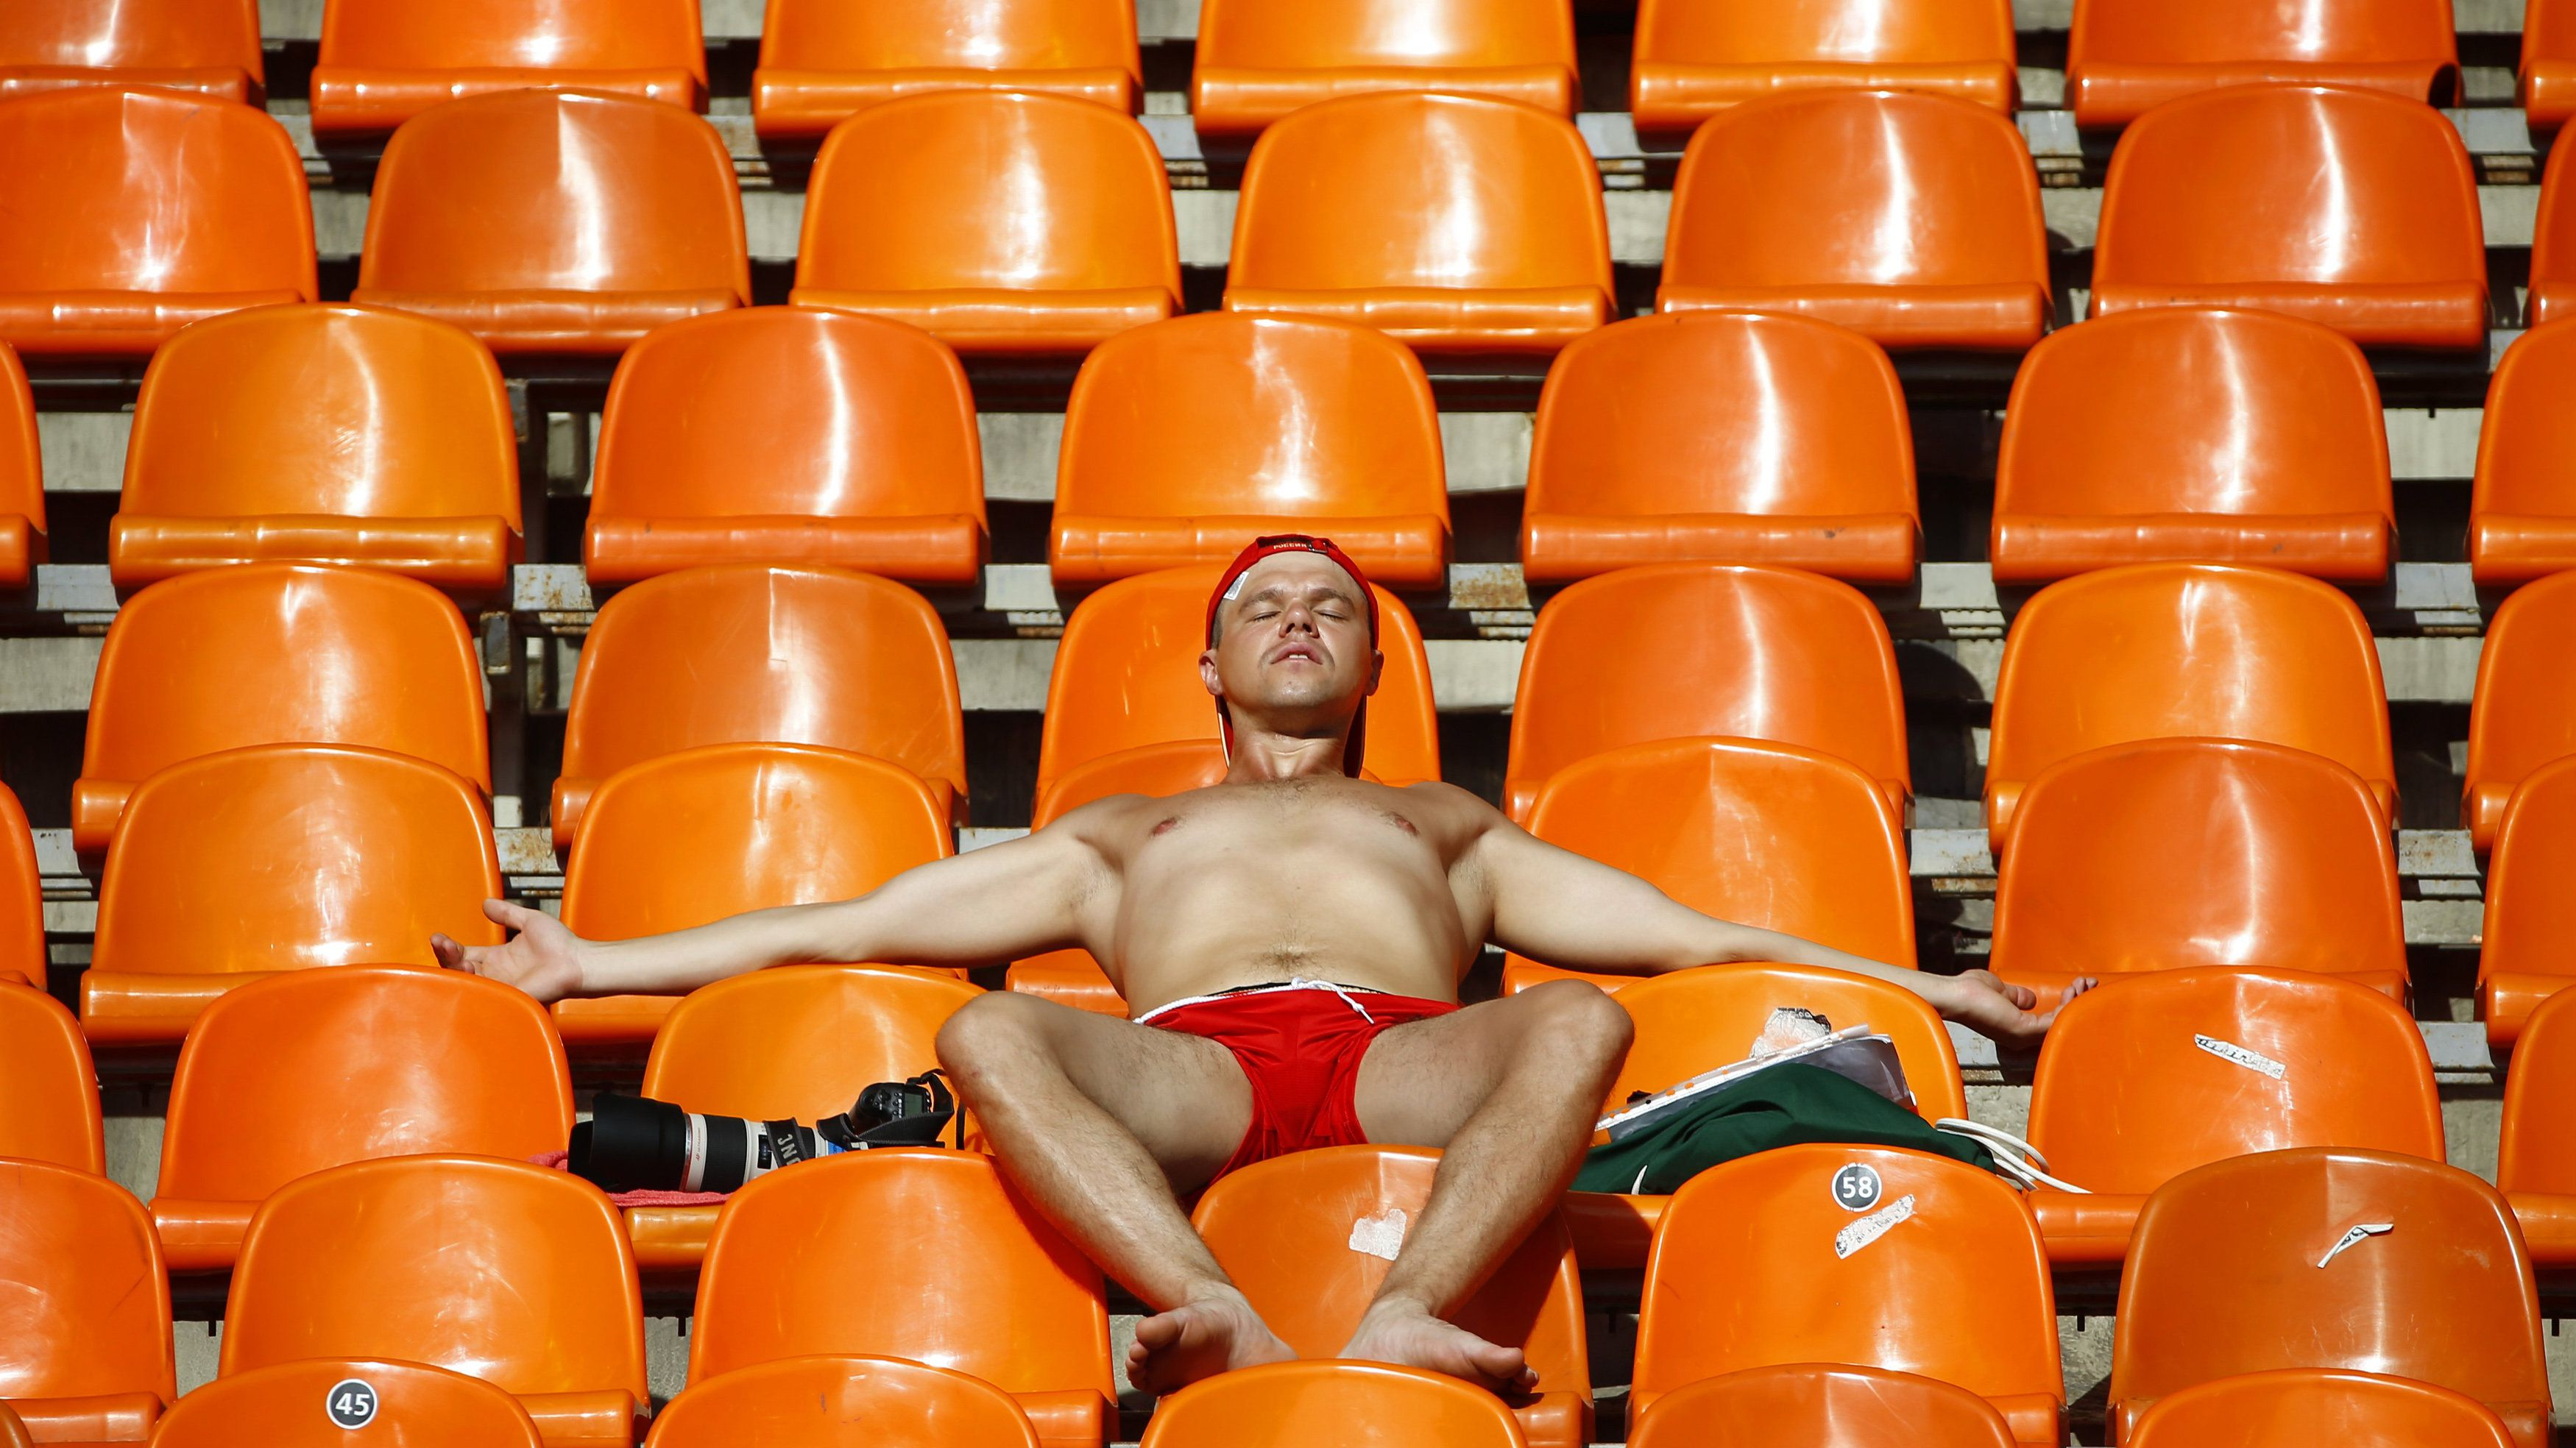 A spectator tans himself in the sun during the morning session of the IAAF World Athletics Championships at the Luzhniki stadium in Moscow August 13, 2013. REUTERS/Kai Pfaffenbach